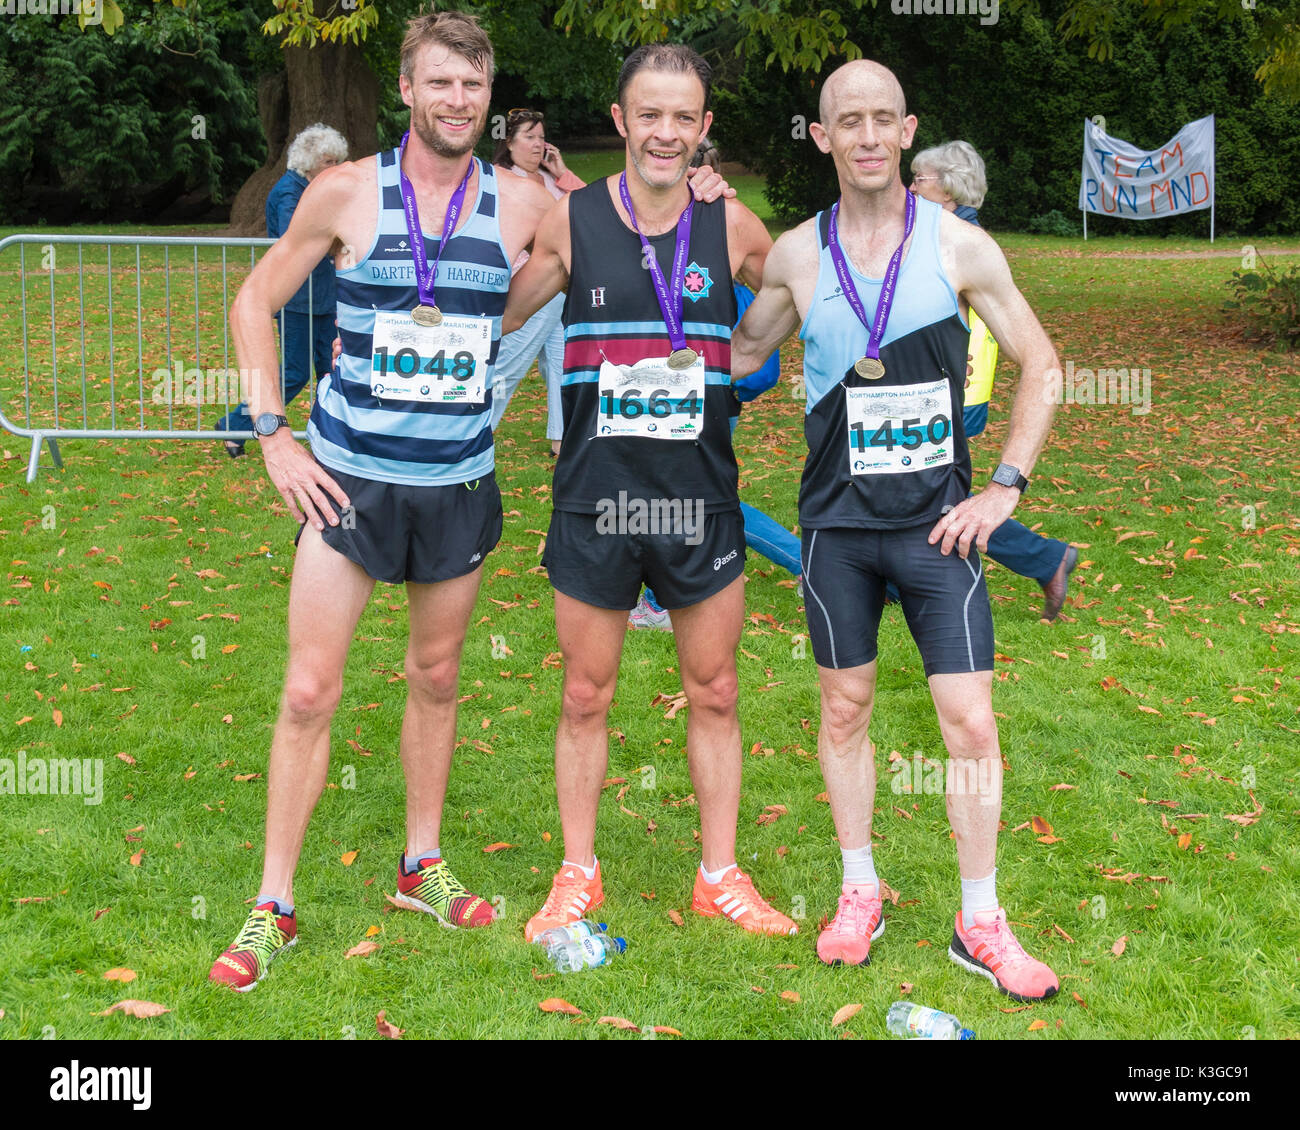 Northampton, UK. 3rd September, 2017. Northampton Half Marathon From Northampton  Guildhall to Delapre Country Park.  Park. FIRST  1664 PETER TUCKER  2nd  Phil  Melling  3th  Chris Biddle Credit: PATRICK ANTHONISZ/Alamy Live News - Stock Image